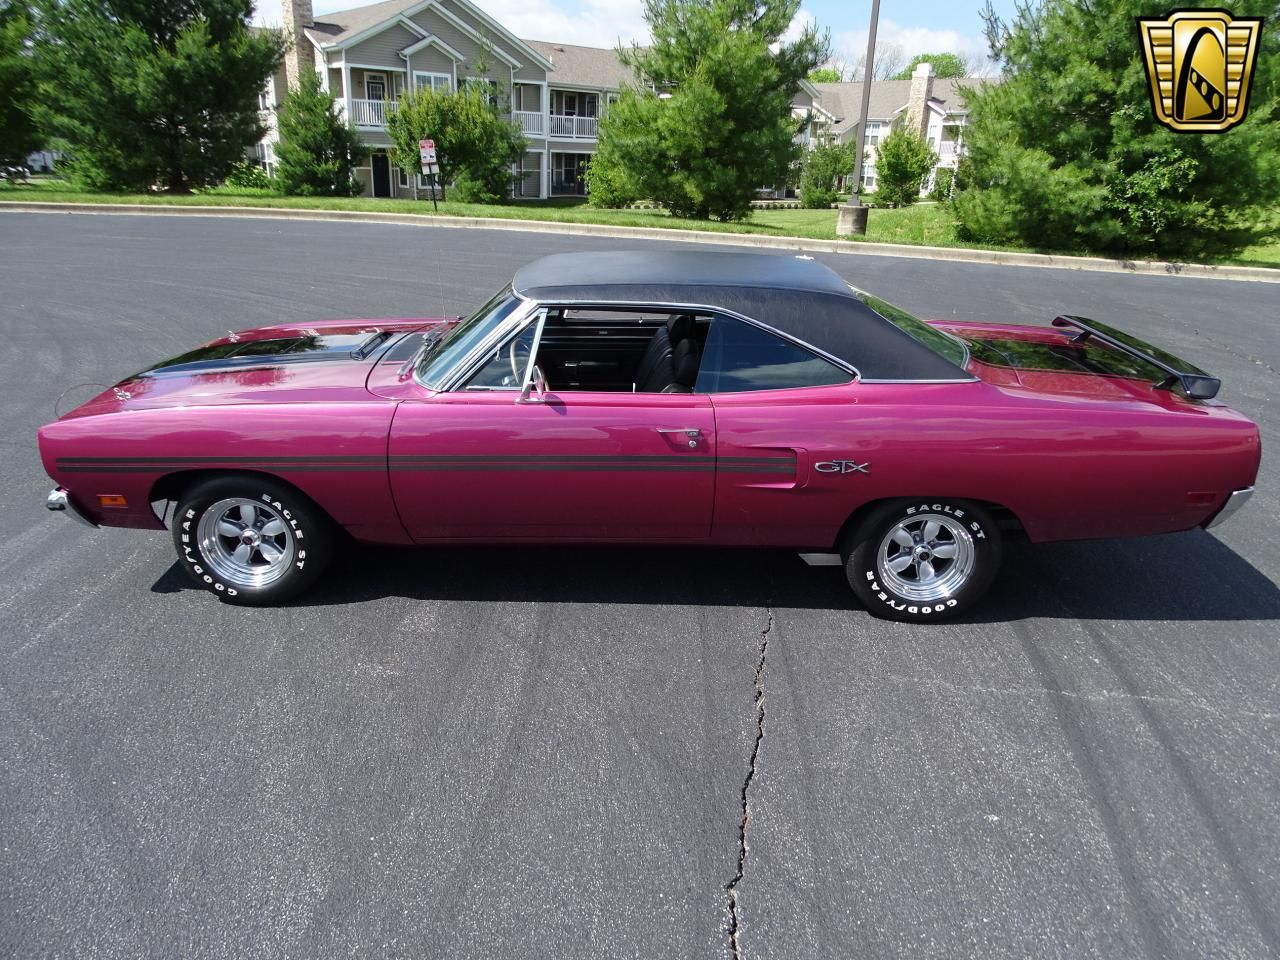 1970 Plymouth Gtx Wiring Diagram Library E30 M30 For Sale In Our St Louis Missouri Showroom Is A Lilac